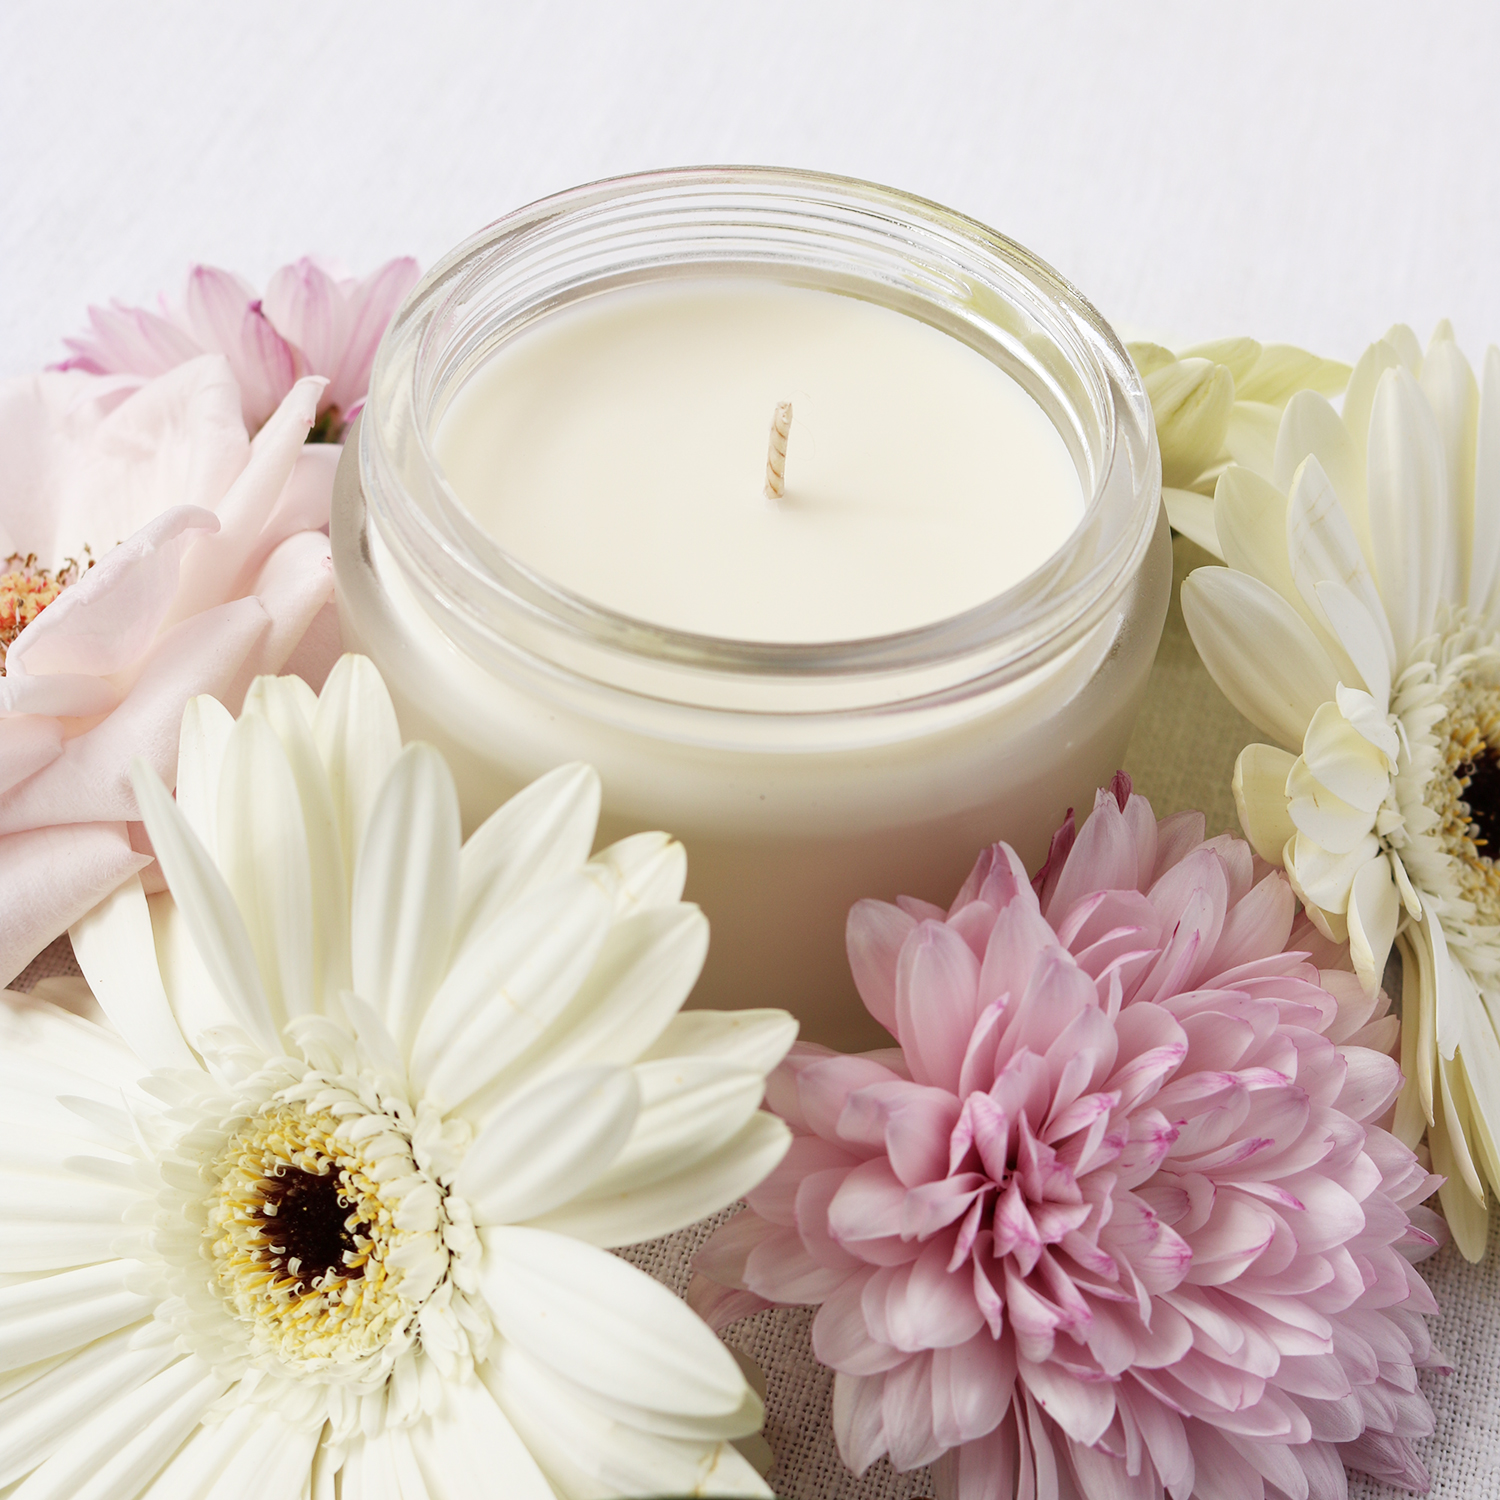 camille-co-candle-spring-2018.jpg